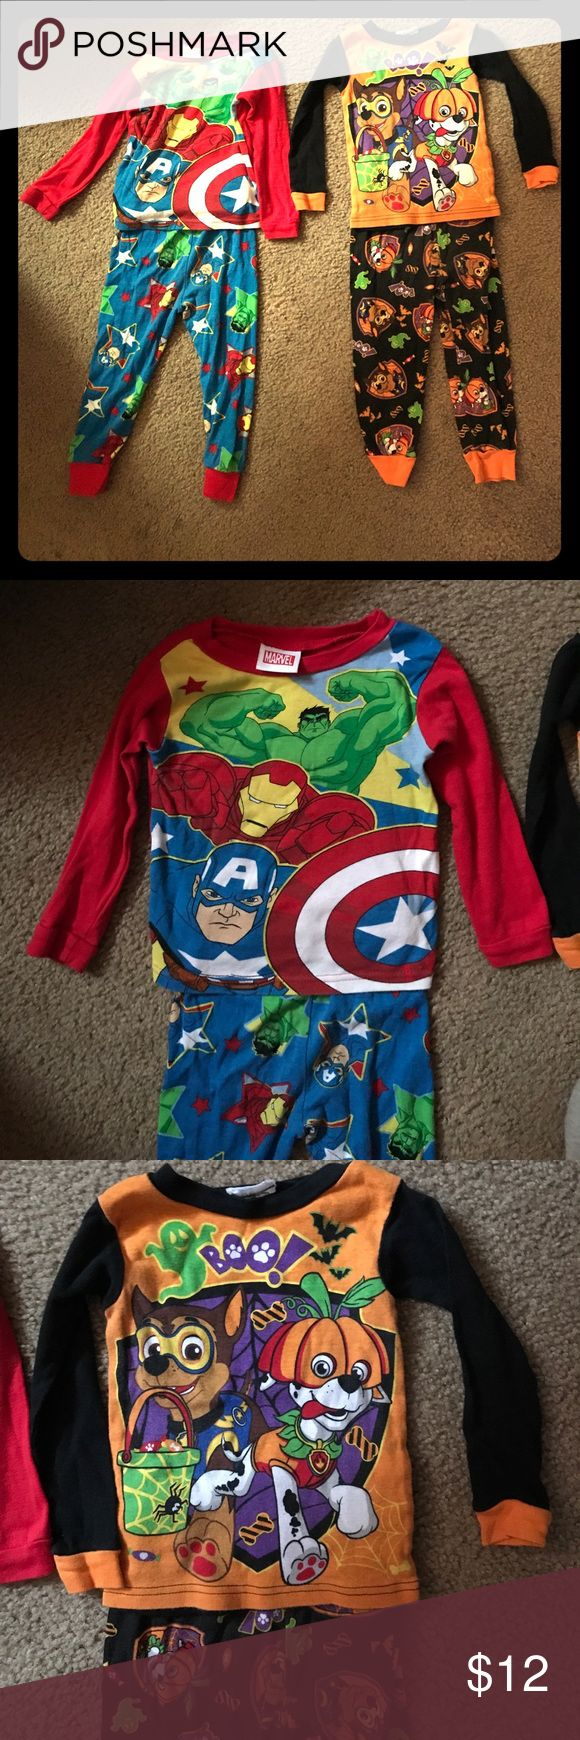 2 set of boys 3T pajamas. Both are size 3T. One is Marvel superheroes and one is Paw Patrol Halloween. Both pants and long sleeve shirts. Pajamas Pajama Sets